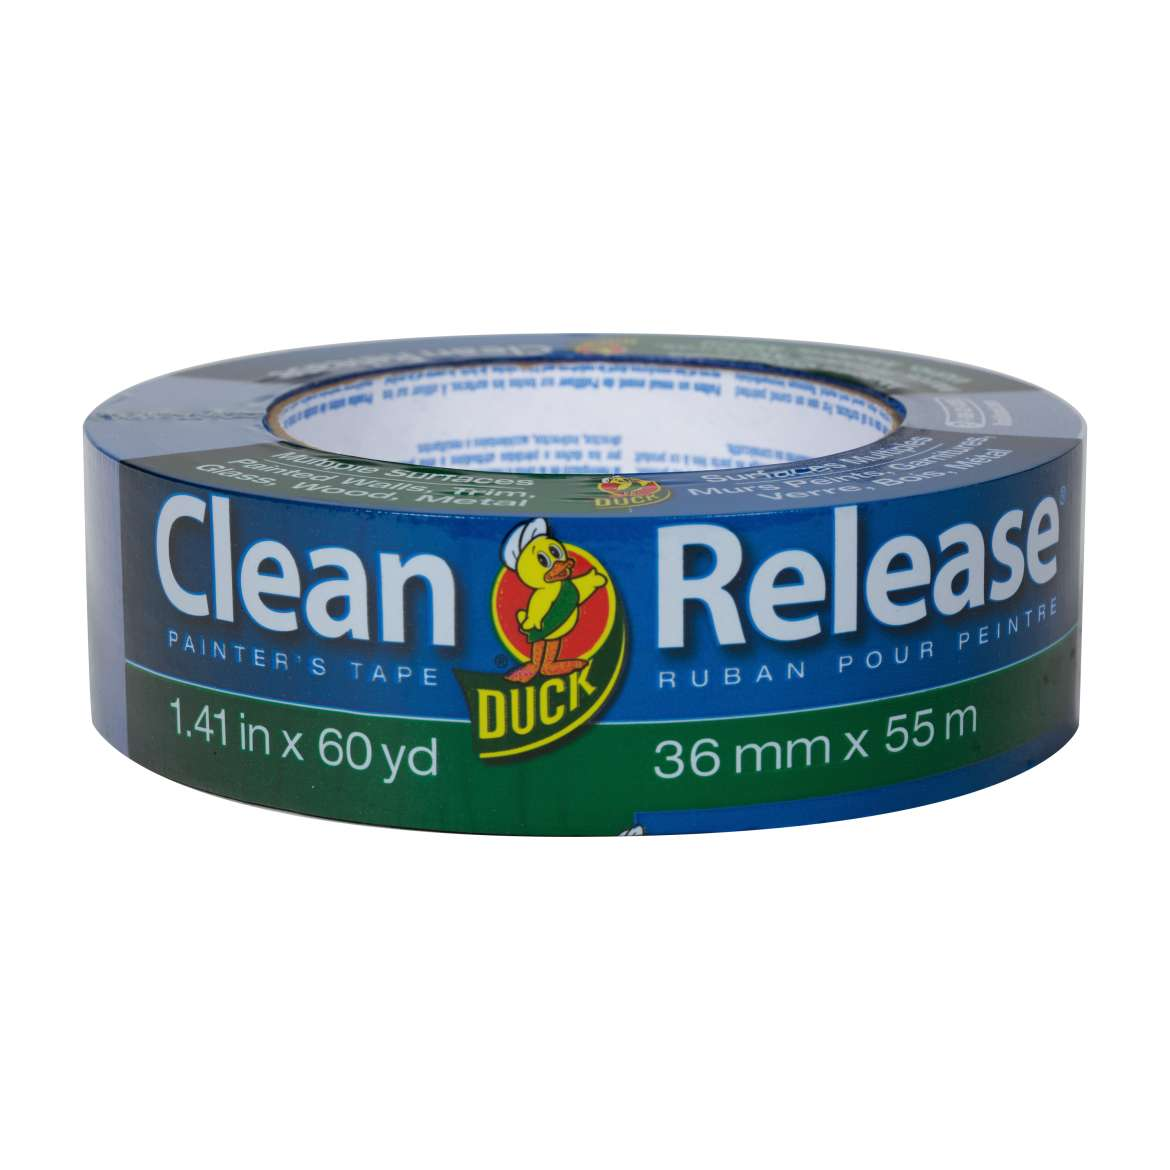 Clean Release® Painter's Tape - Blue, 1.41 in. x 60 yd. Image